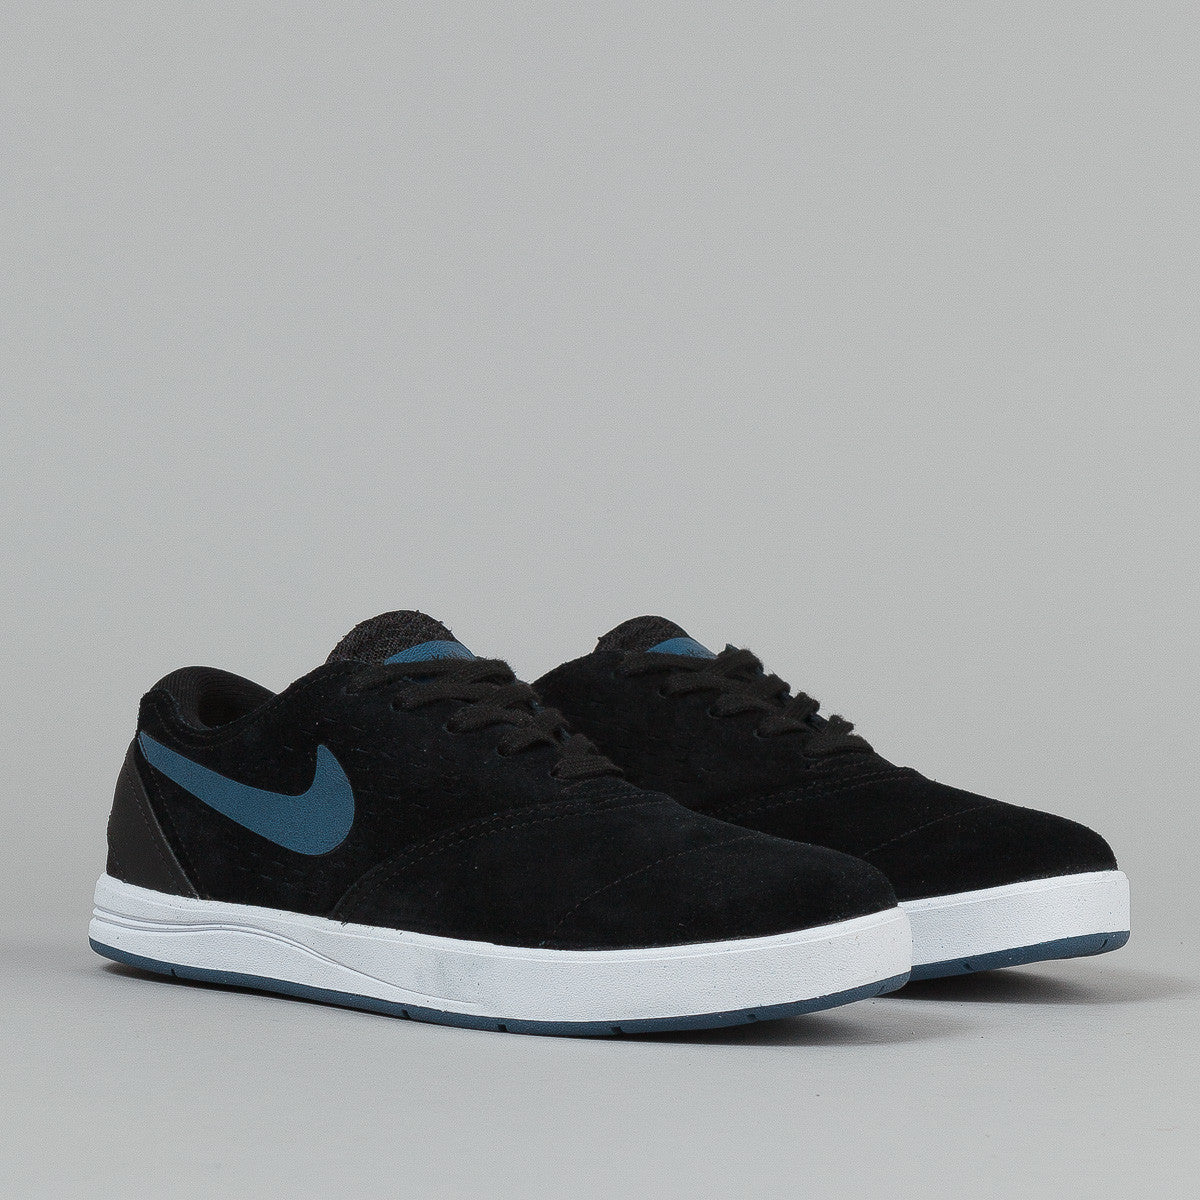 Nike SB Eric Koston 2 Black / New Slate - Varisty Maize